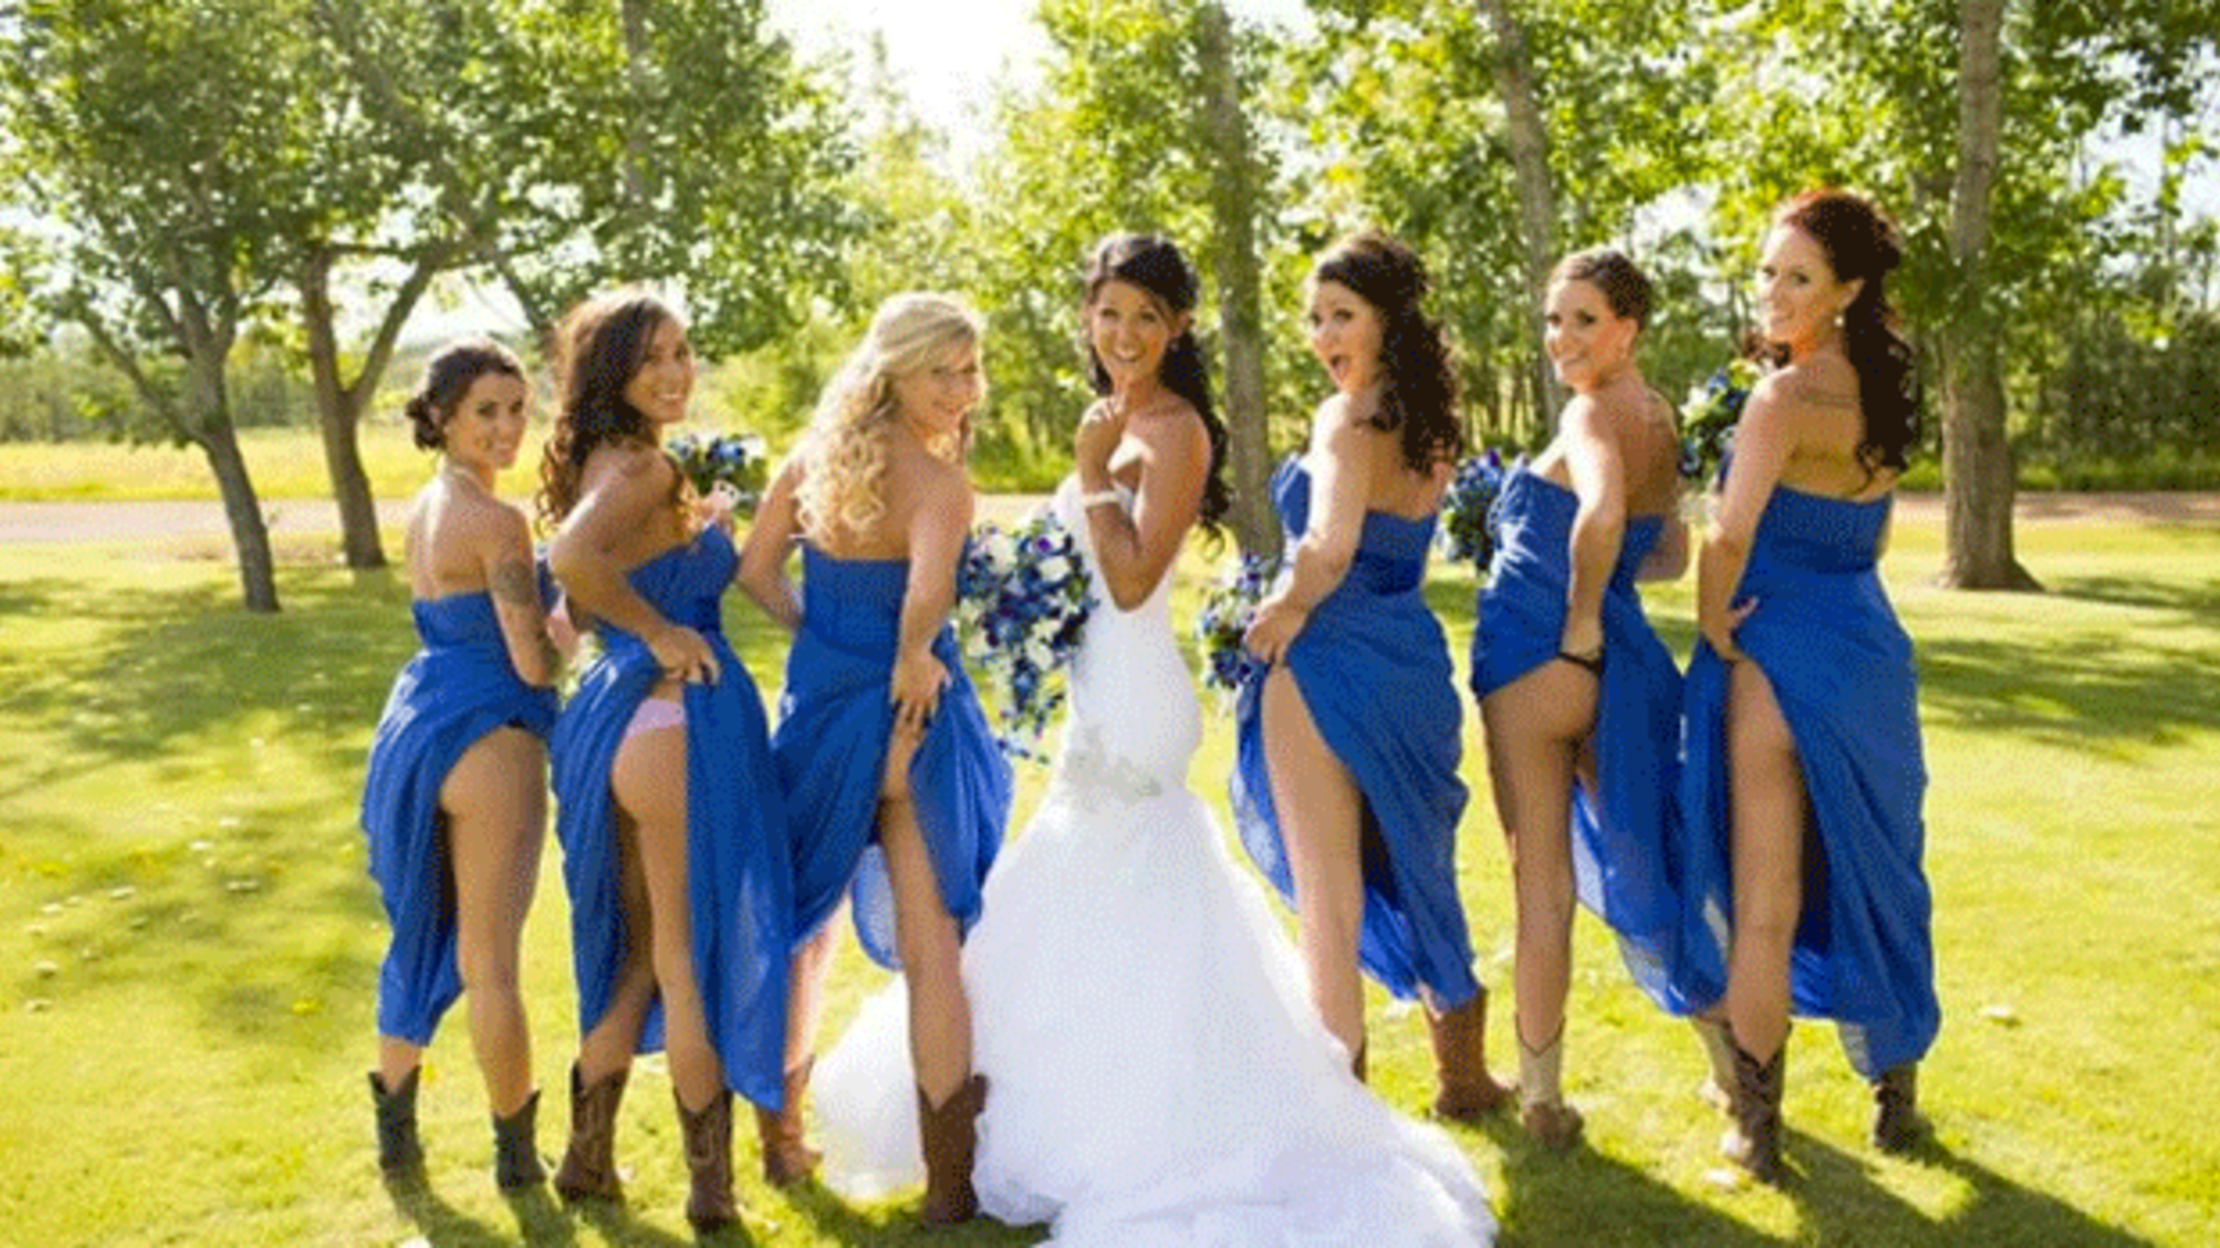 8 Old Wedding Traditions You Didn't Know Existed | Mental Floss